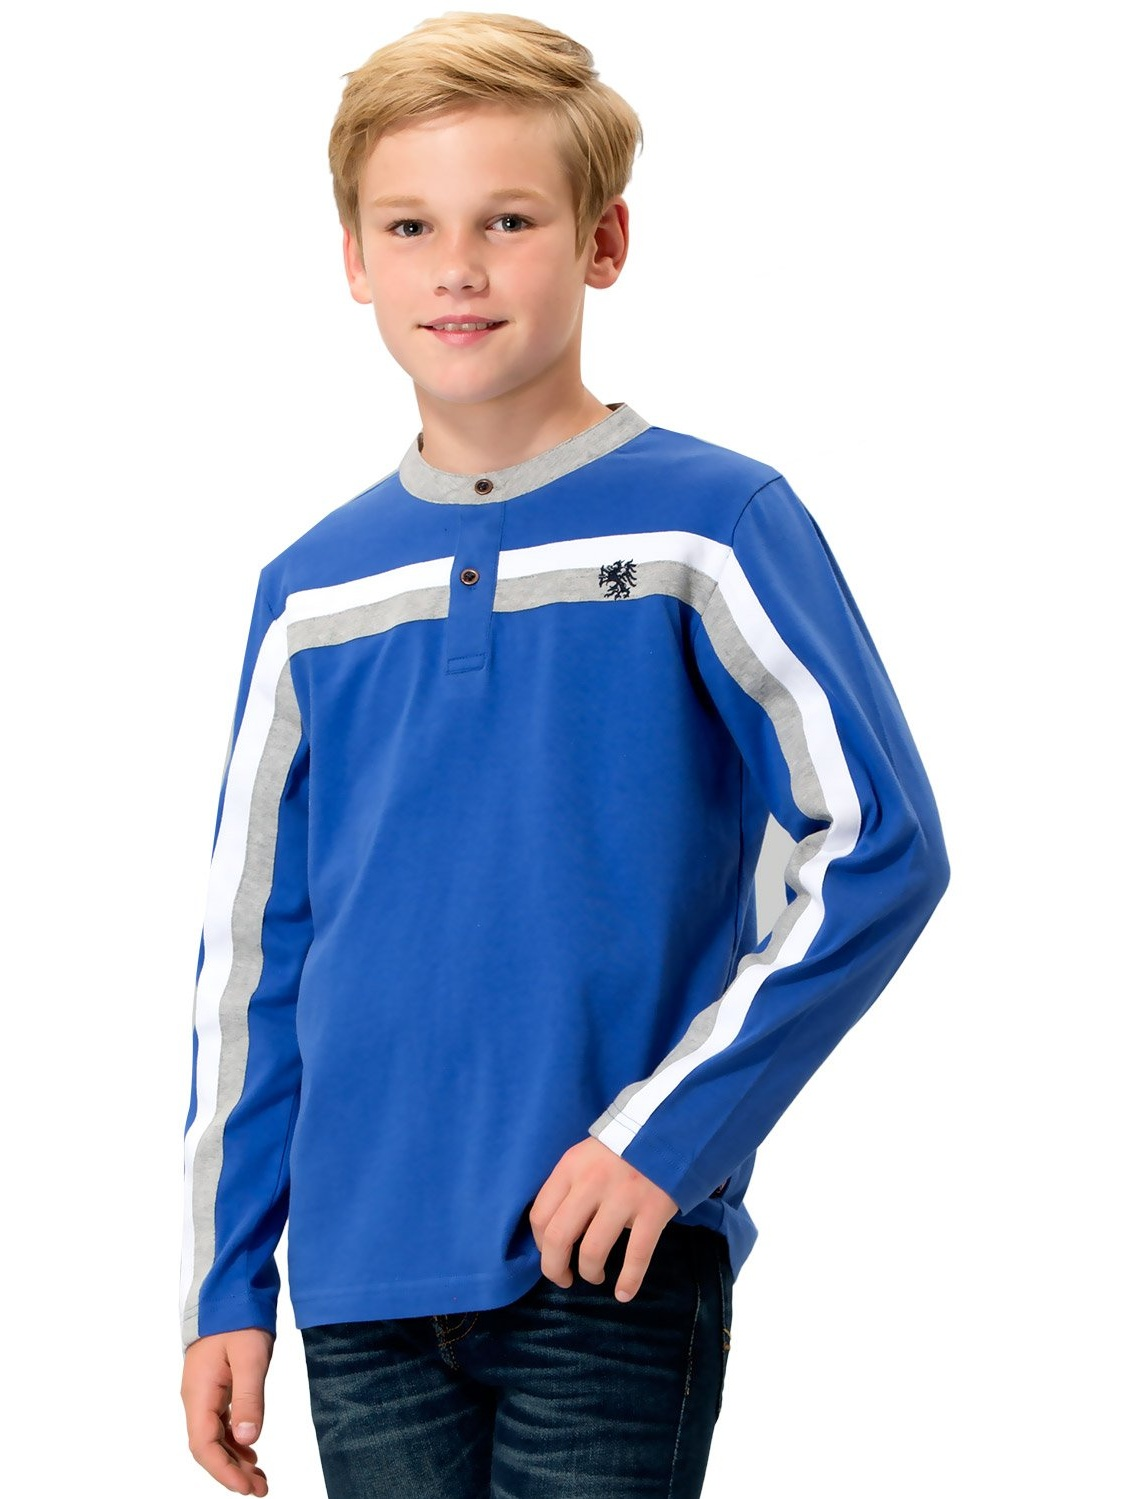 Leo&Lily Boys' Kids' Long Sleeves Sports Casual Yarn Dyed Pull On Top T Shirt